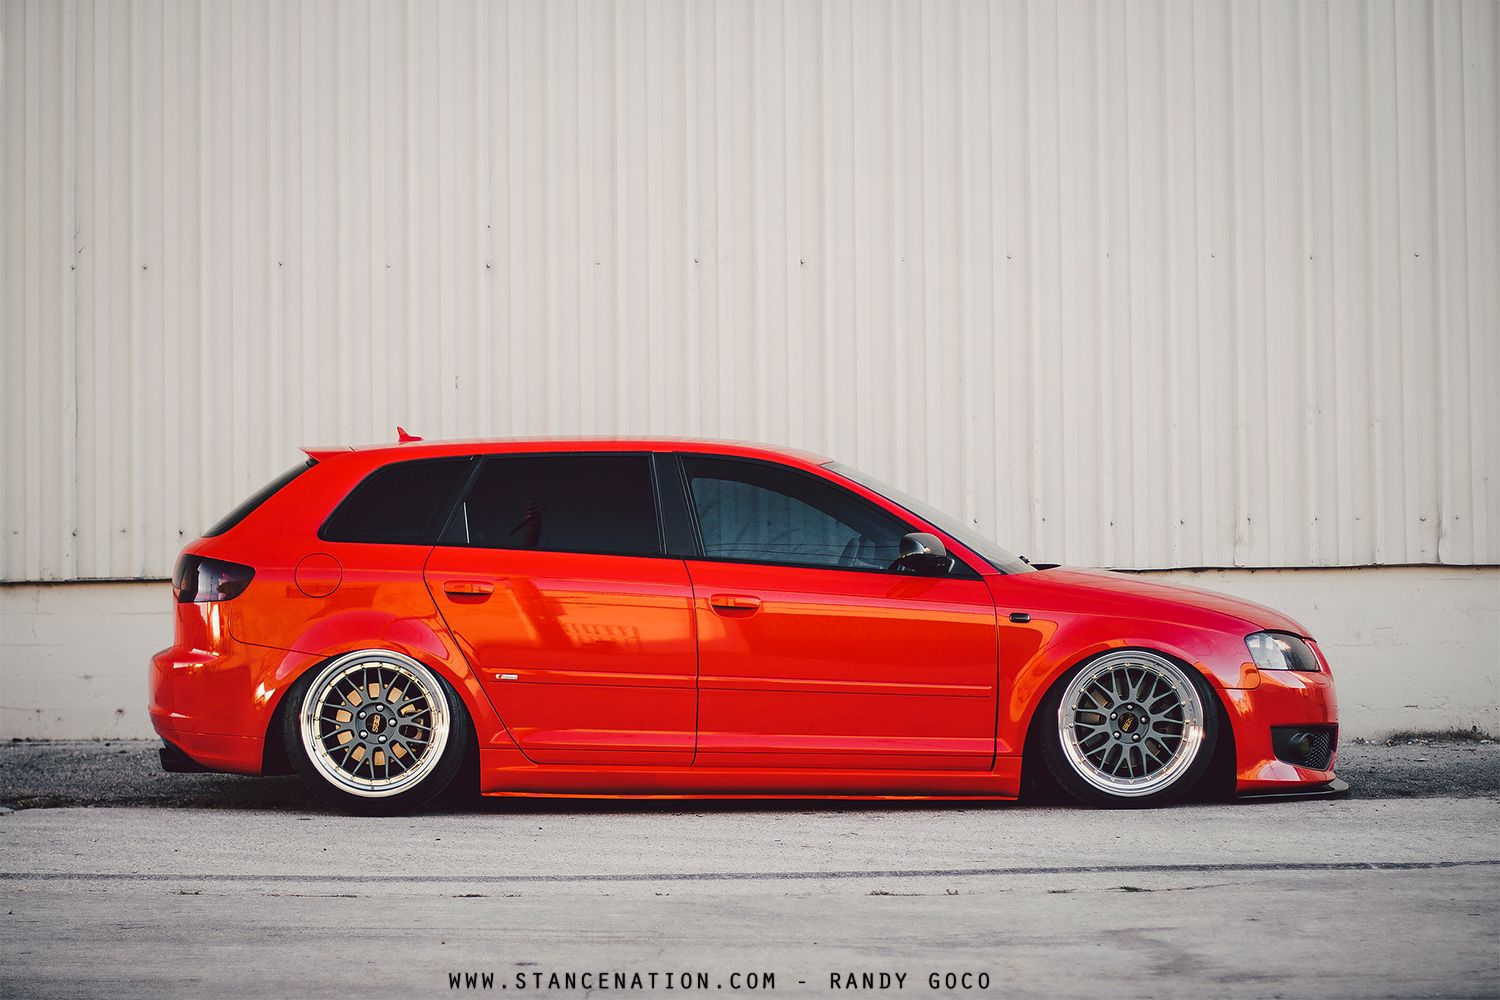 modified audi a3 4 tuning pinterest audi a3 cars and audi rs. Black Bedroom Furniture Sets. Home Design Ideas